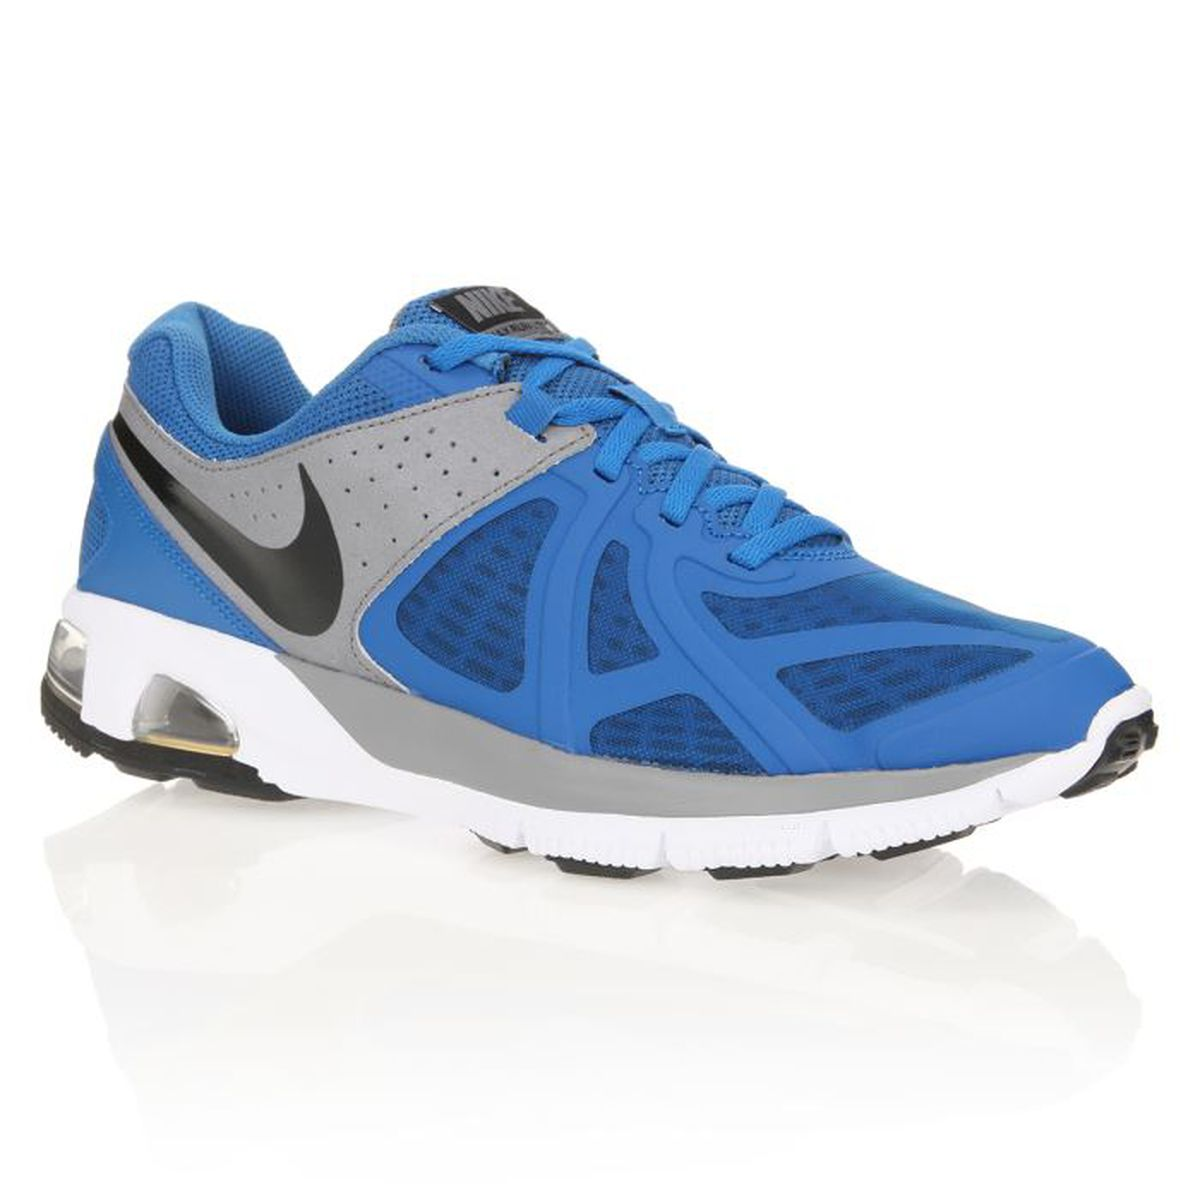 nike chaussures running air max run lite 5 nike air max griffey 1 chaussure. Black Bedroom Furniture Sets. Home Design Ideas